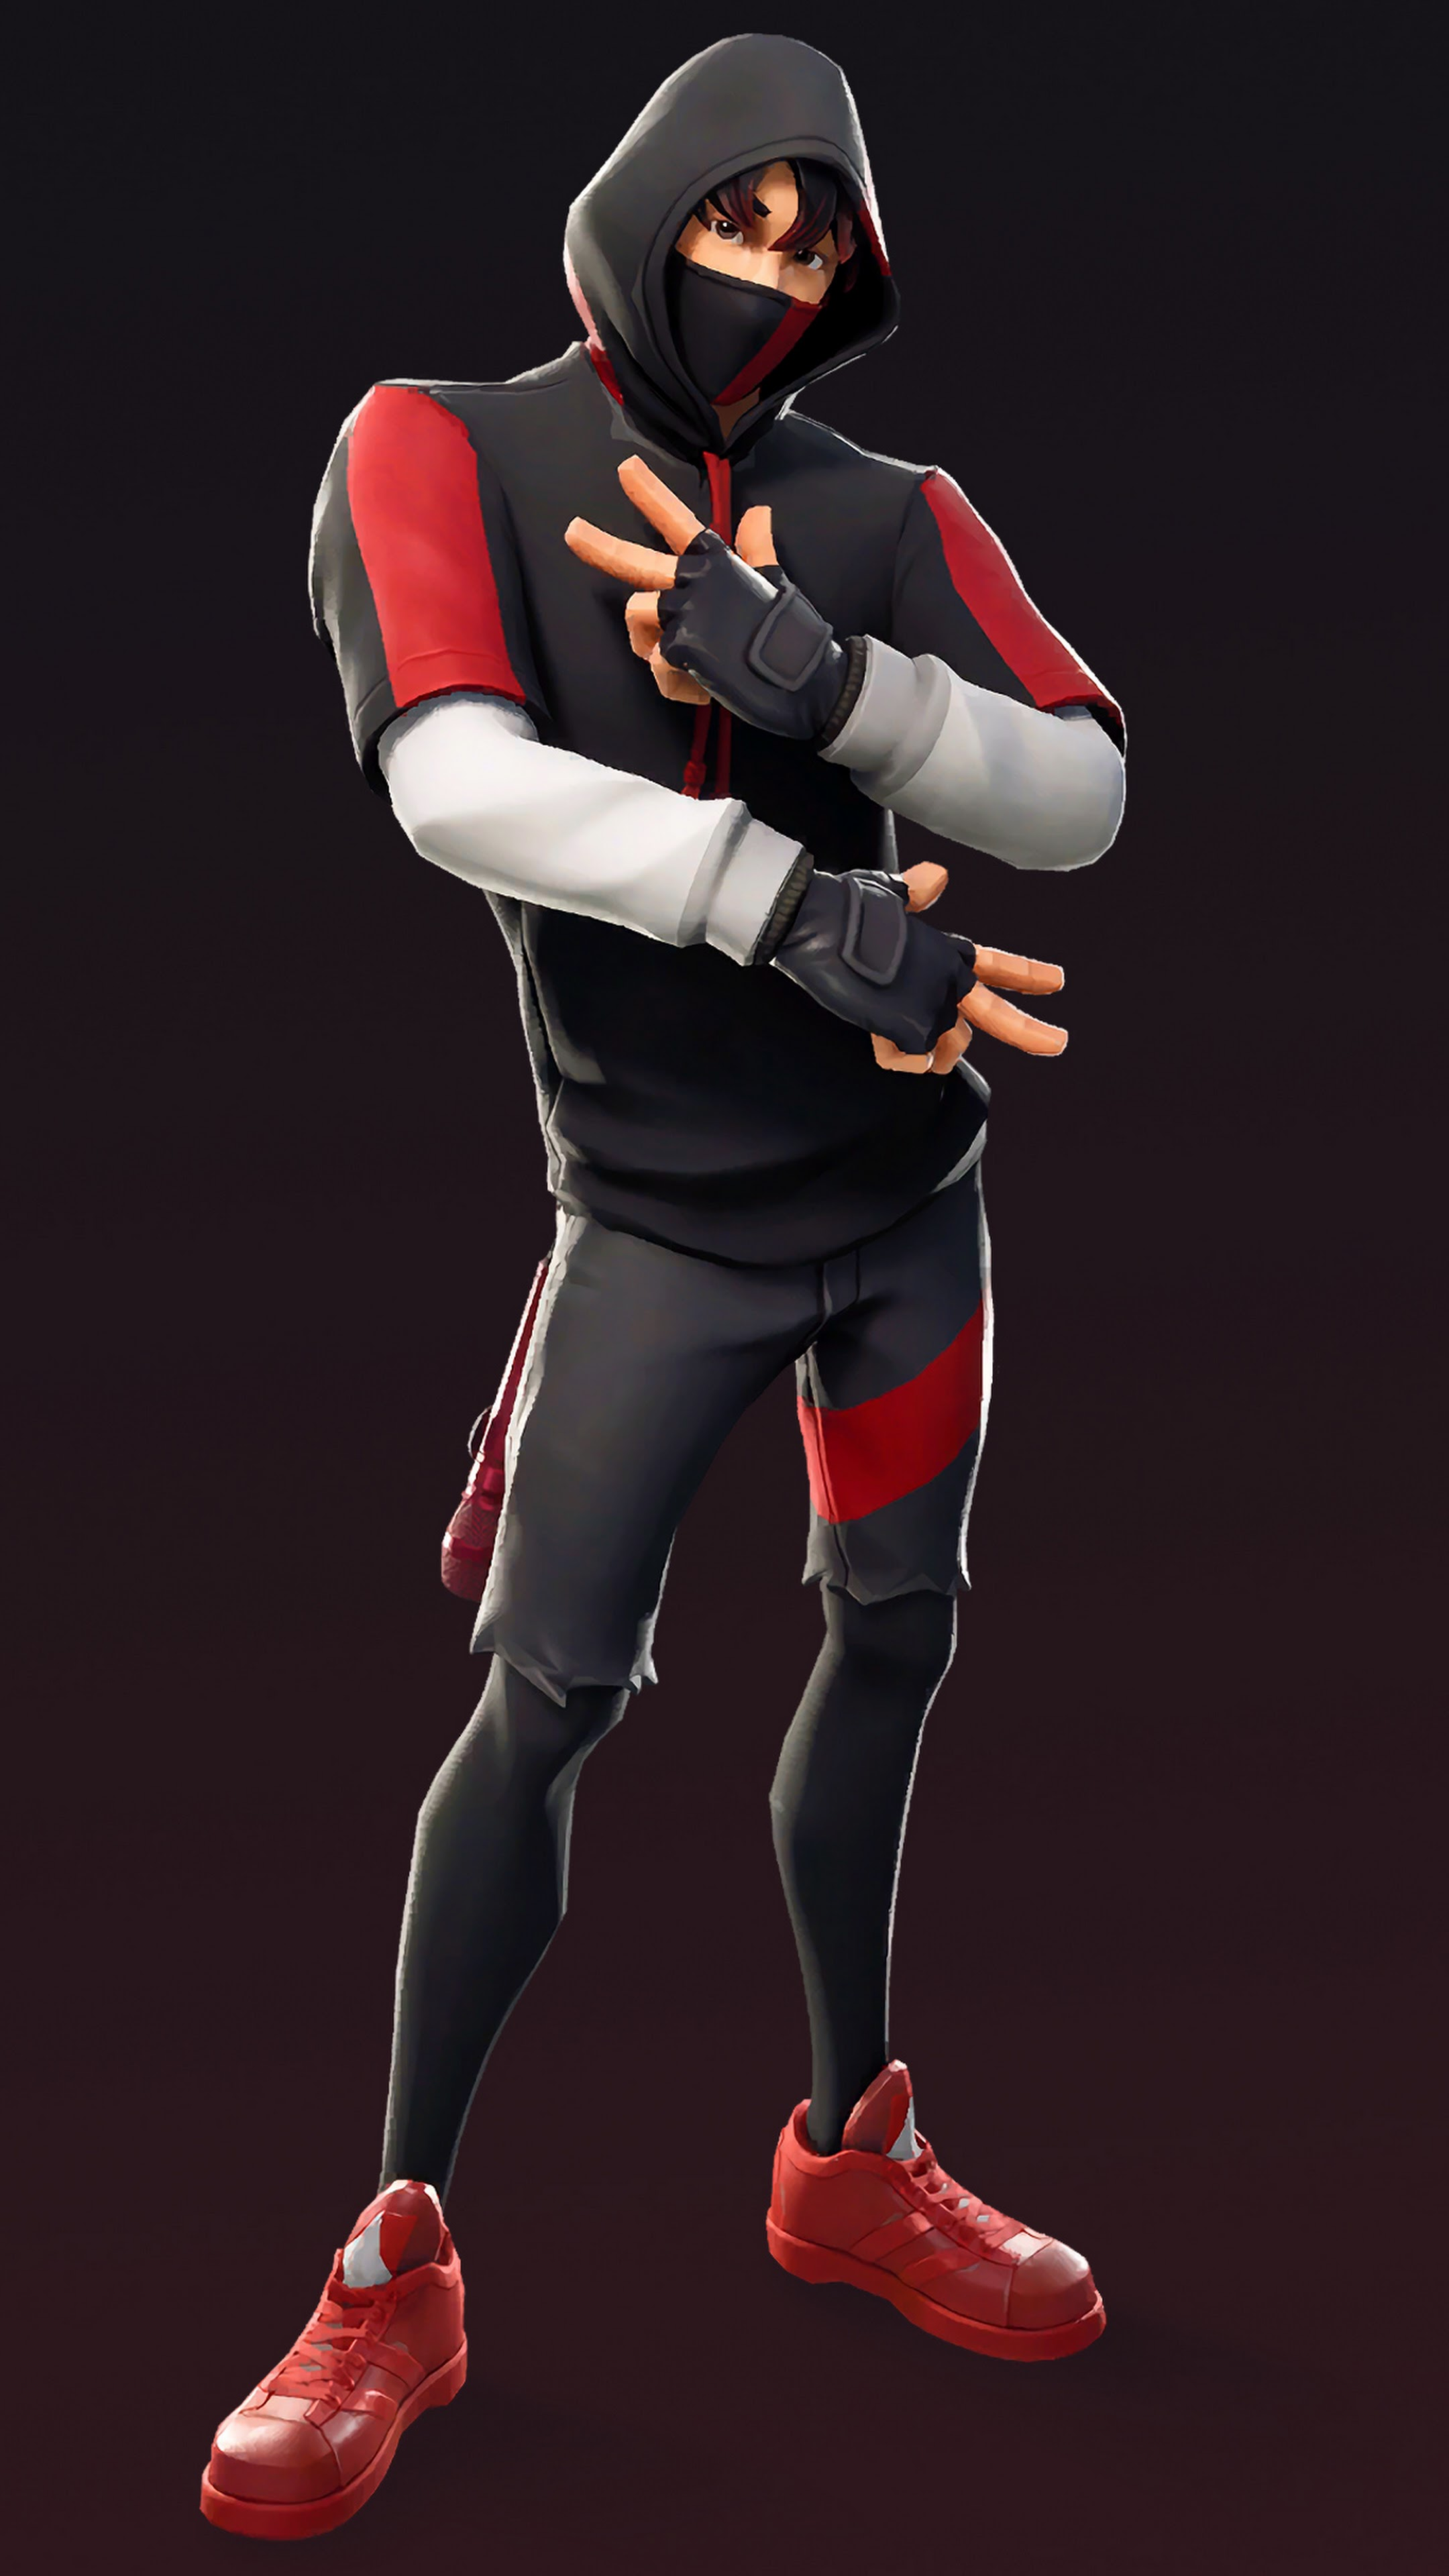 Fortnite Battle Royale Ikonik Outfit Skin Samsung S10 4k Wallpaper 94